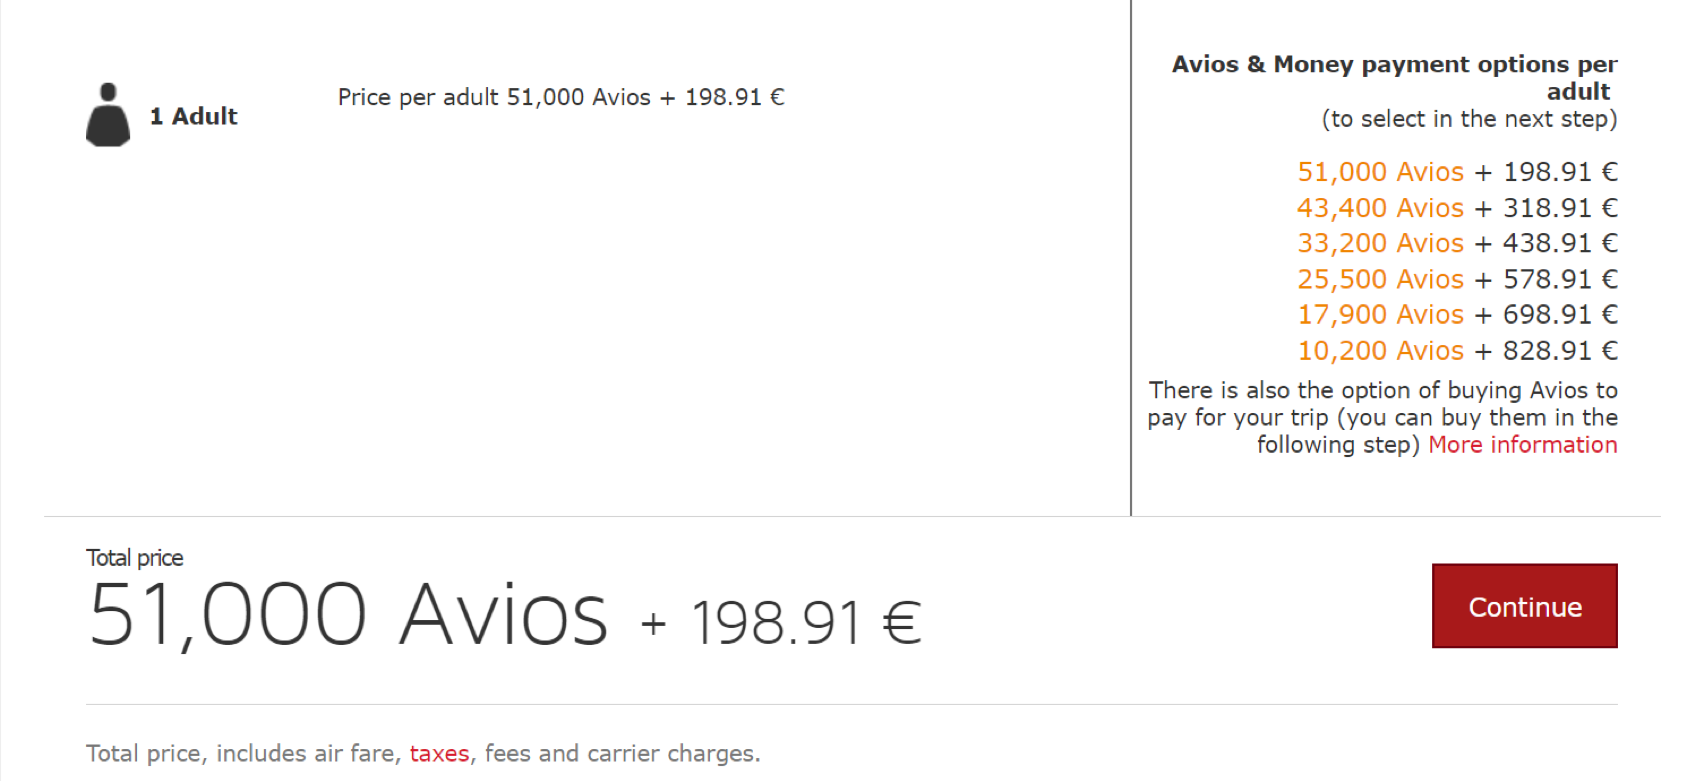 Iberia Avios 25 Percent Off Award Sale Through January 31 2018 - ORD-MAD-ORD-Total